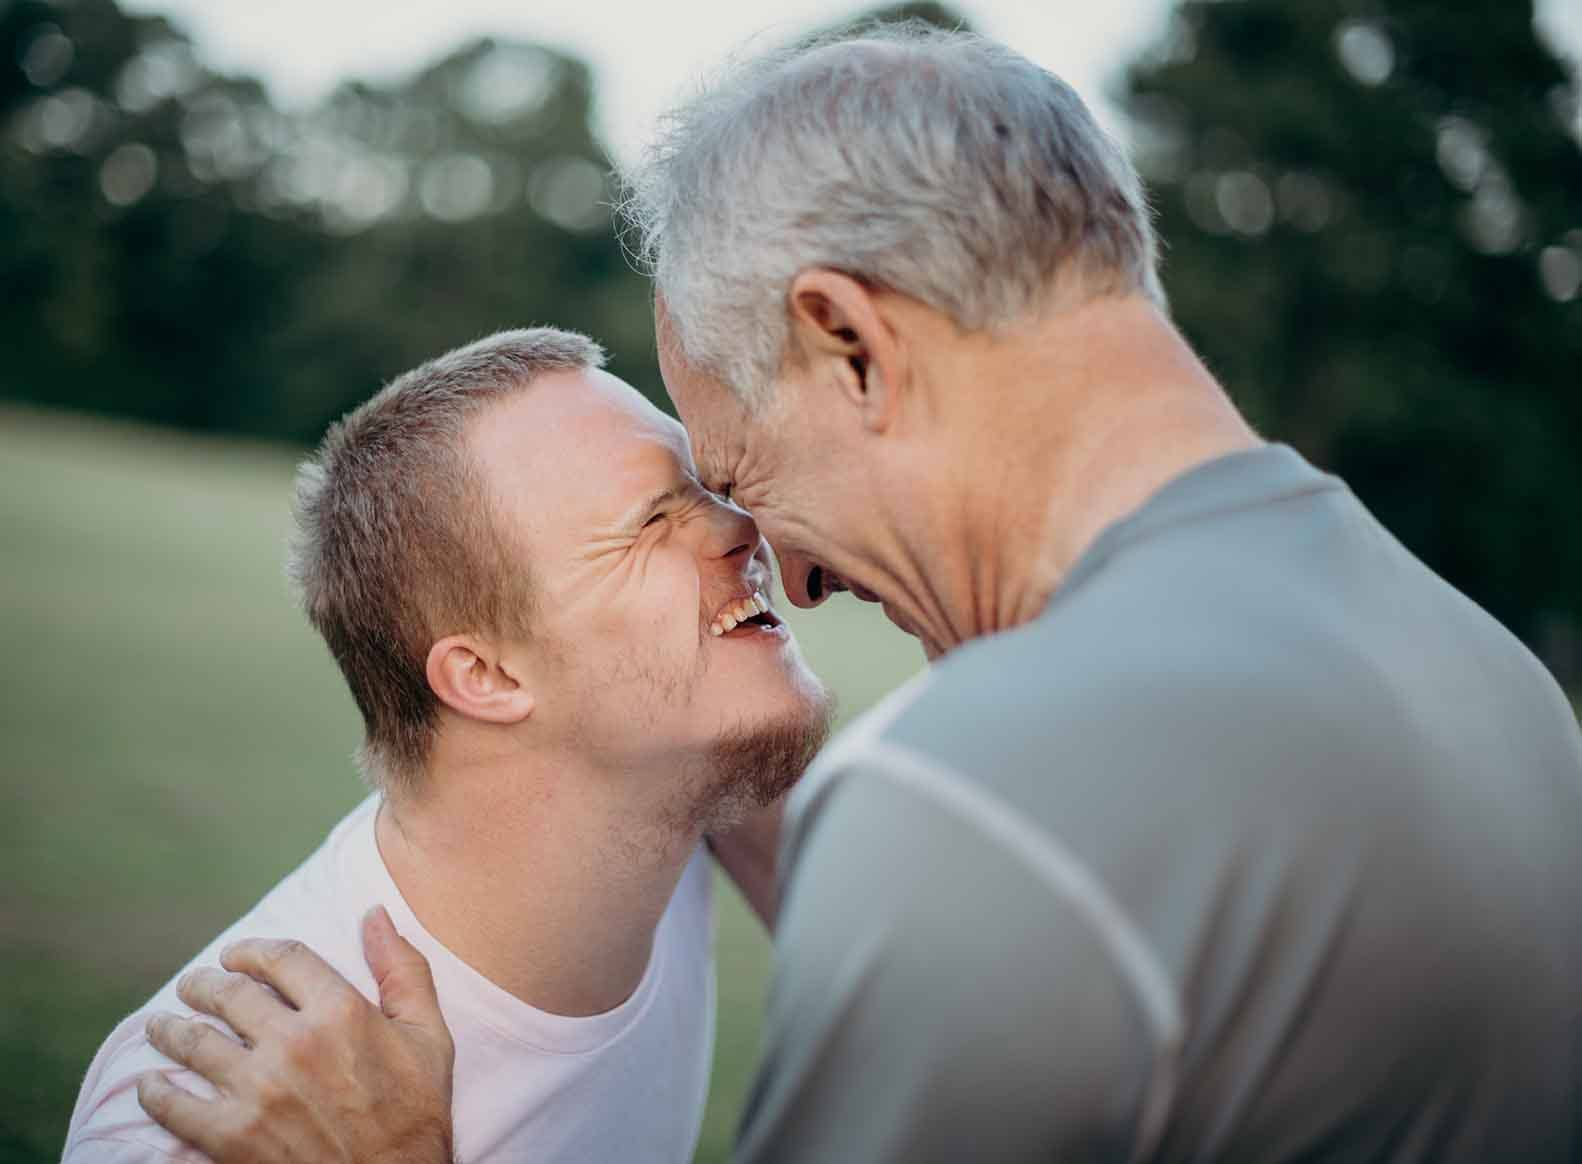 father and son facing each other, smiling, and putting foreheads together